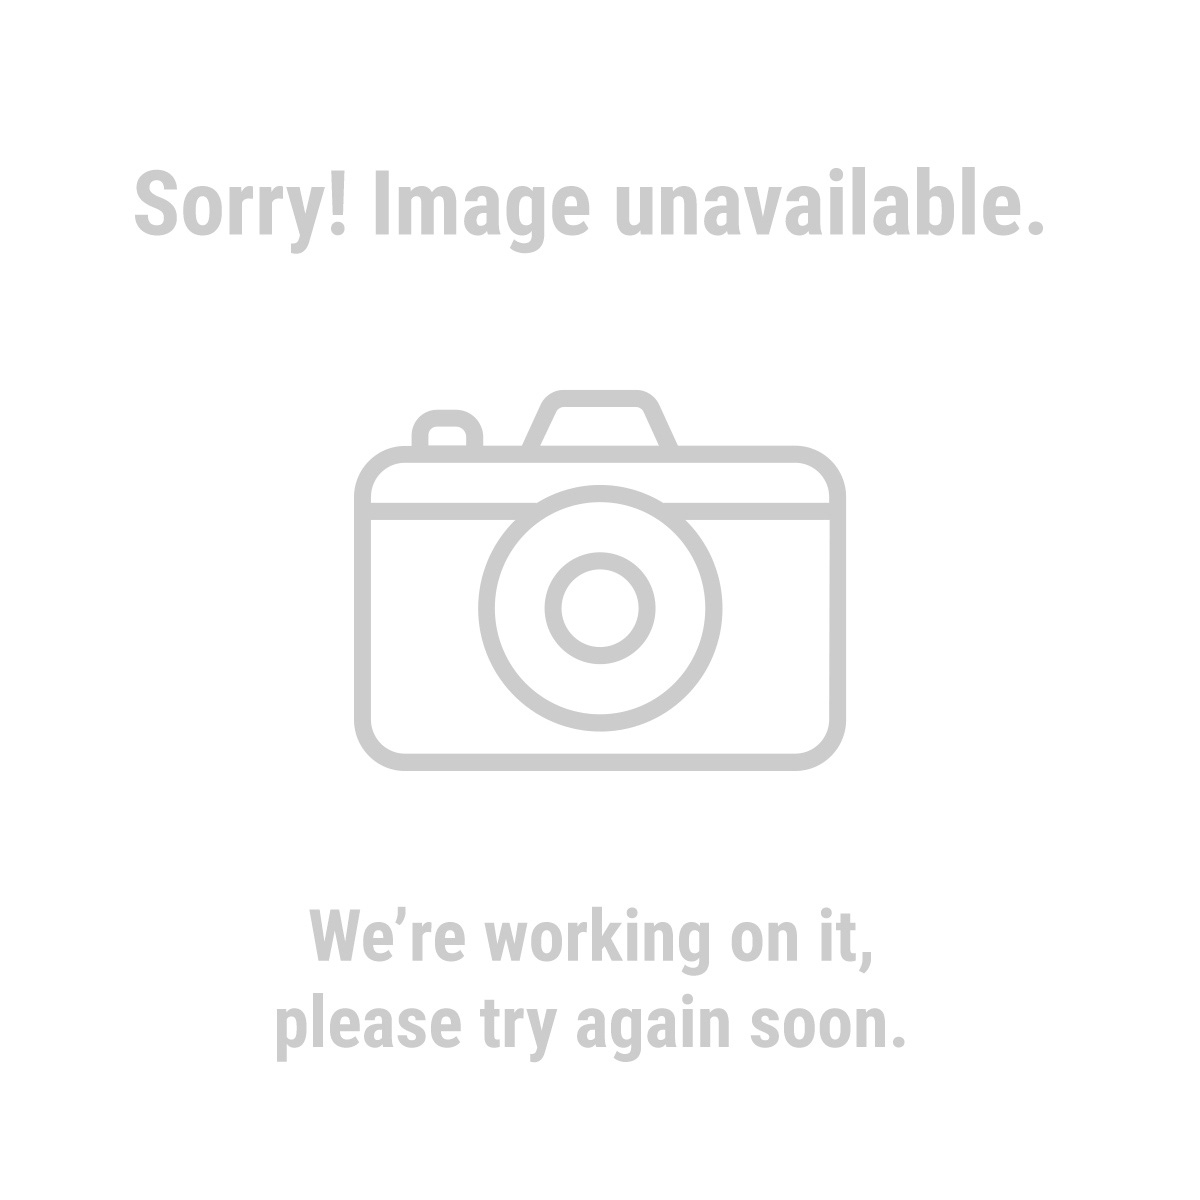 1300 Lbs Electric Hoist With Remote Control